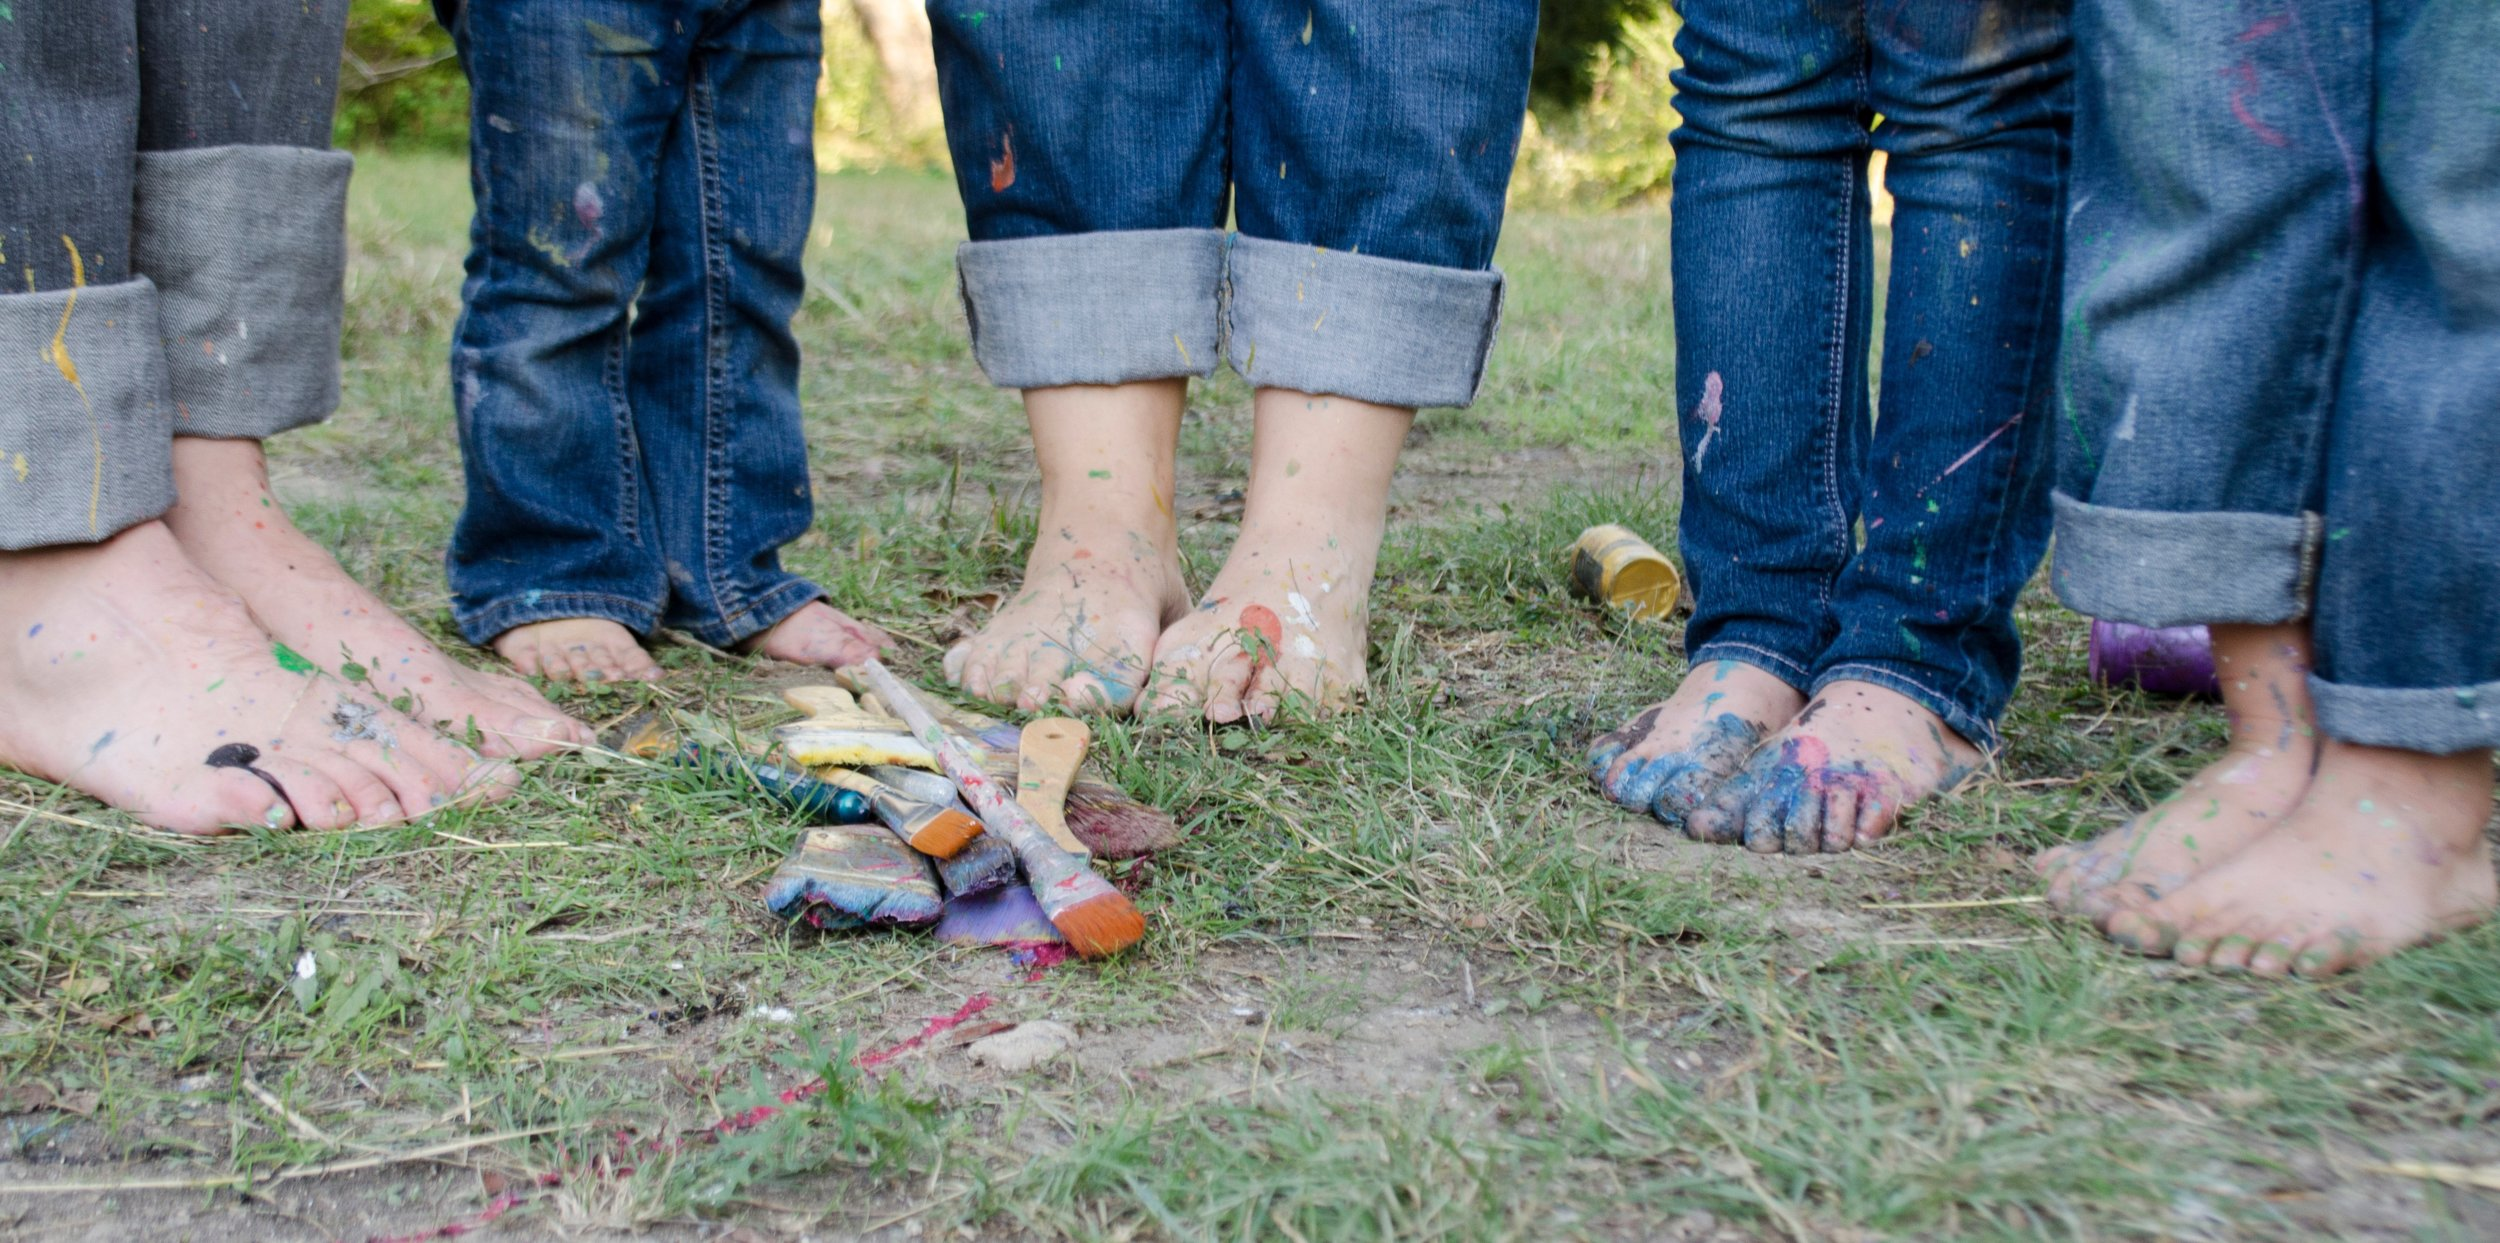 Photo Credit:  https://pixabay.com/photos/family-family-pictures-feet-kids-1839662/